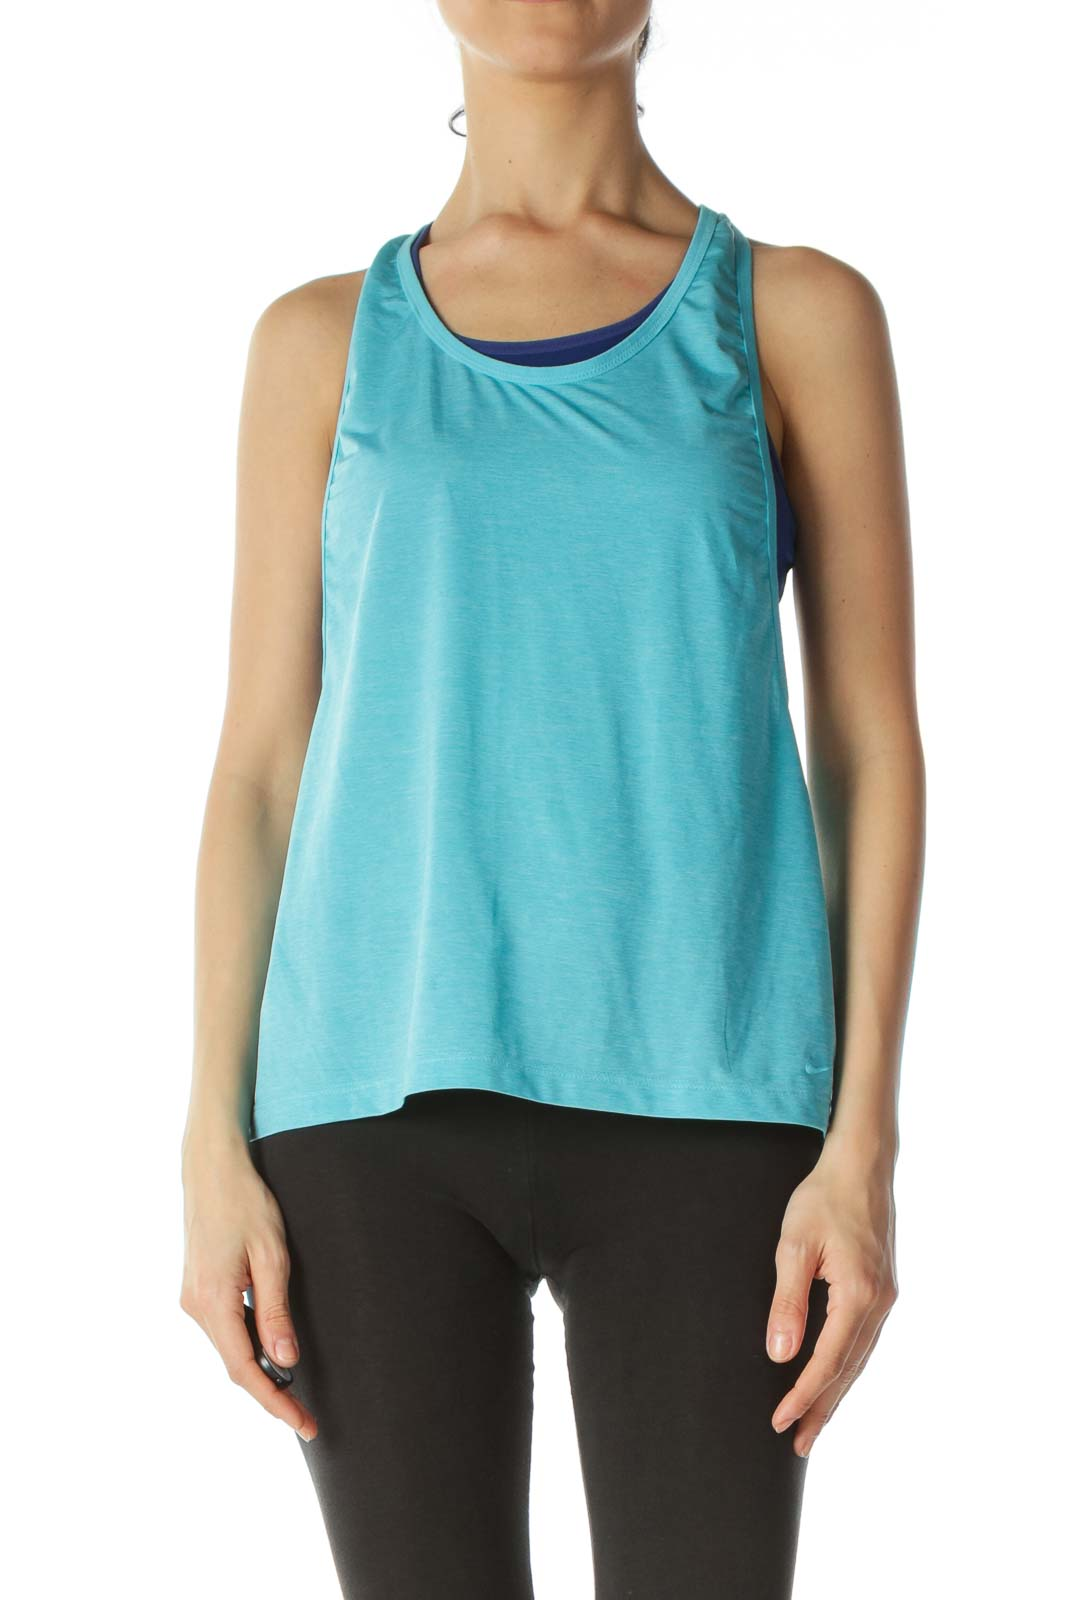 Two-Tone Blue Racerback Sports Top with Built-In Bra